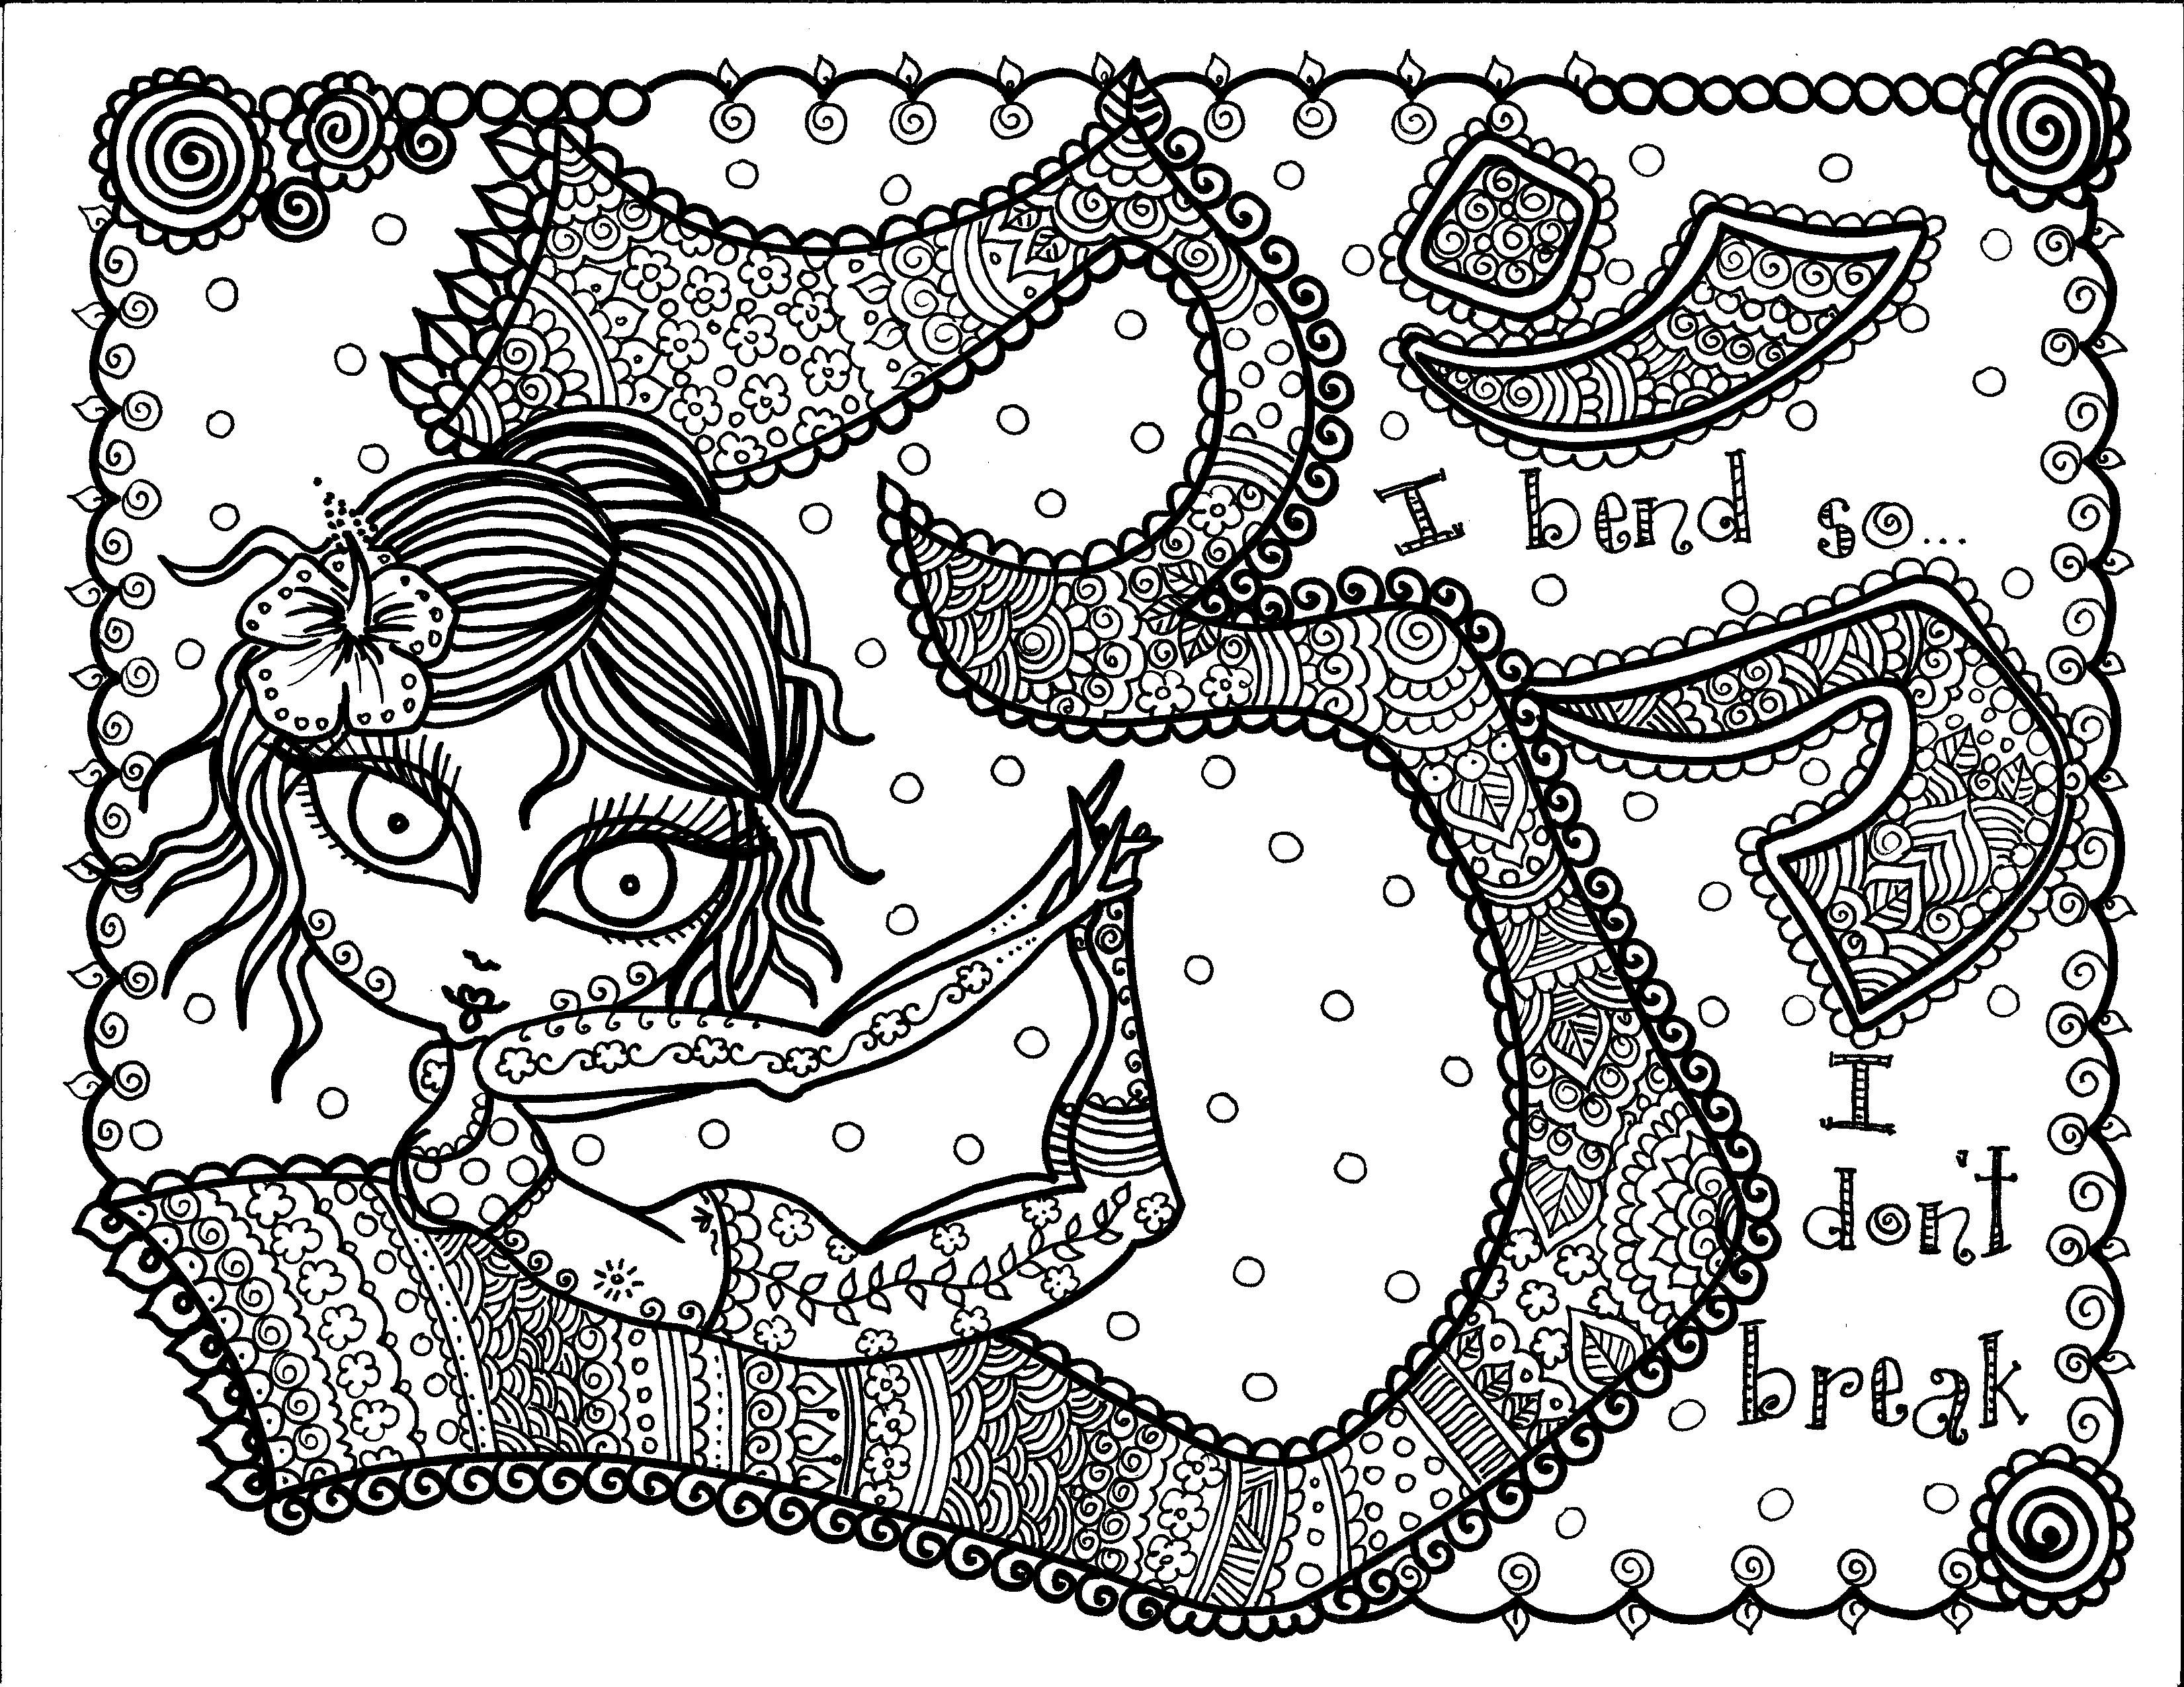 Yoga coloring page chubby mermaid on wild for Yoga coloring pages